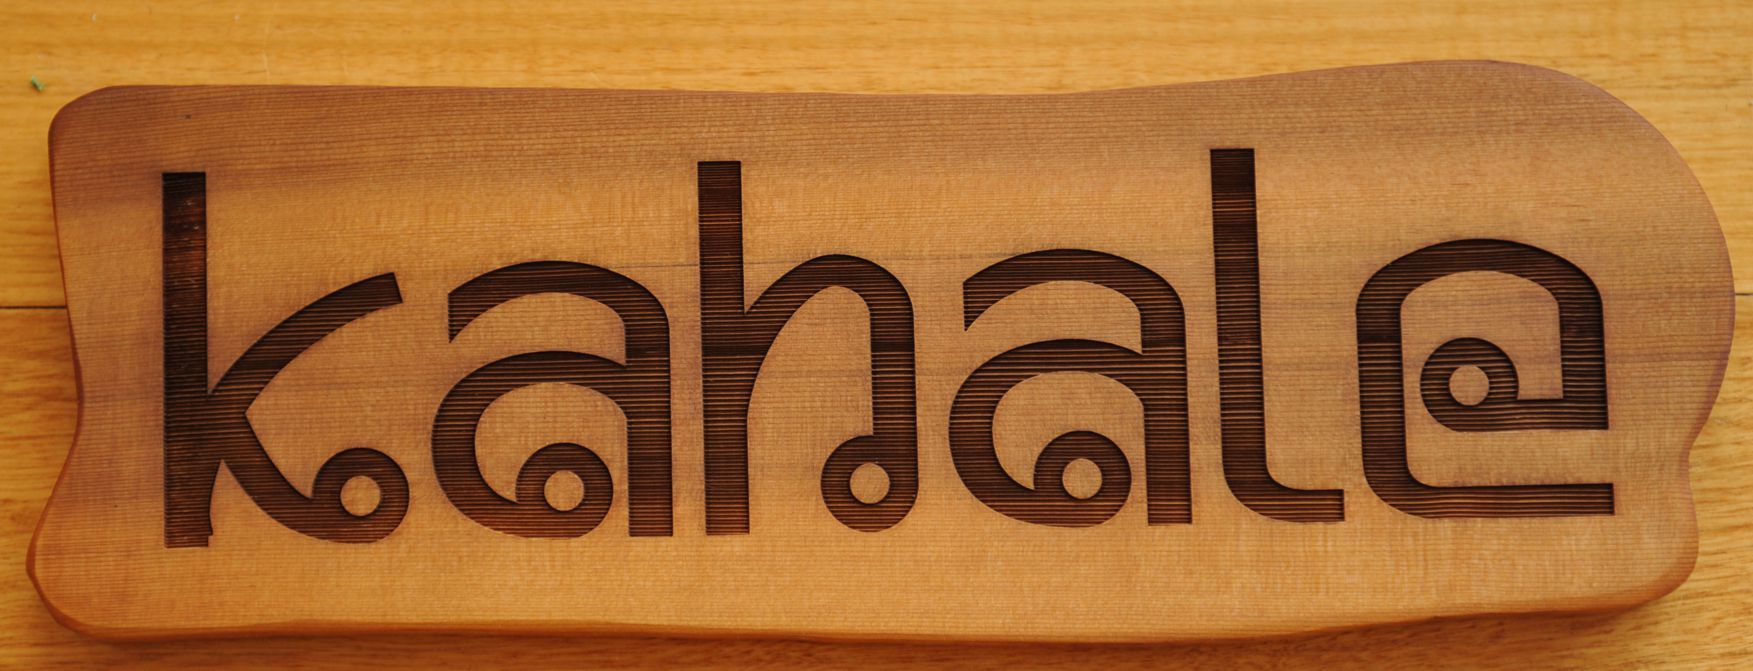 Western Red Cedar house sign. laser engraved shows up dramatic grain effects. MyChoice@Firebridge